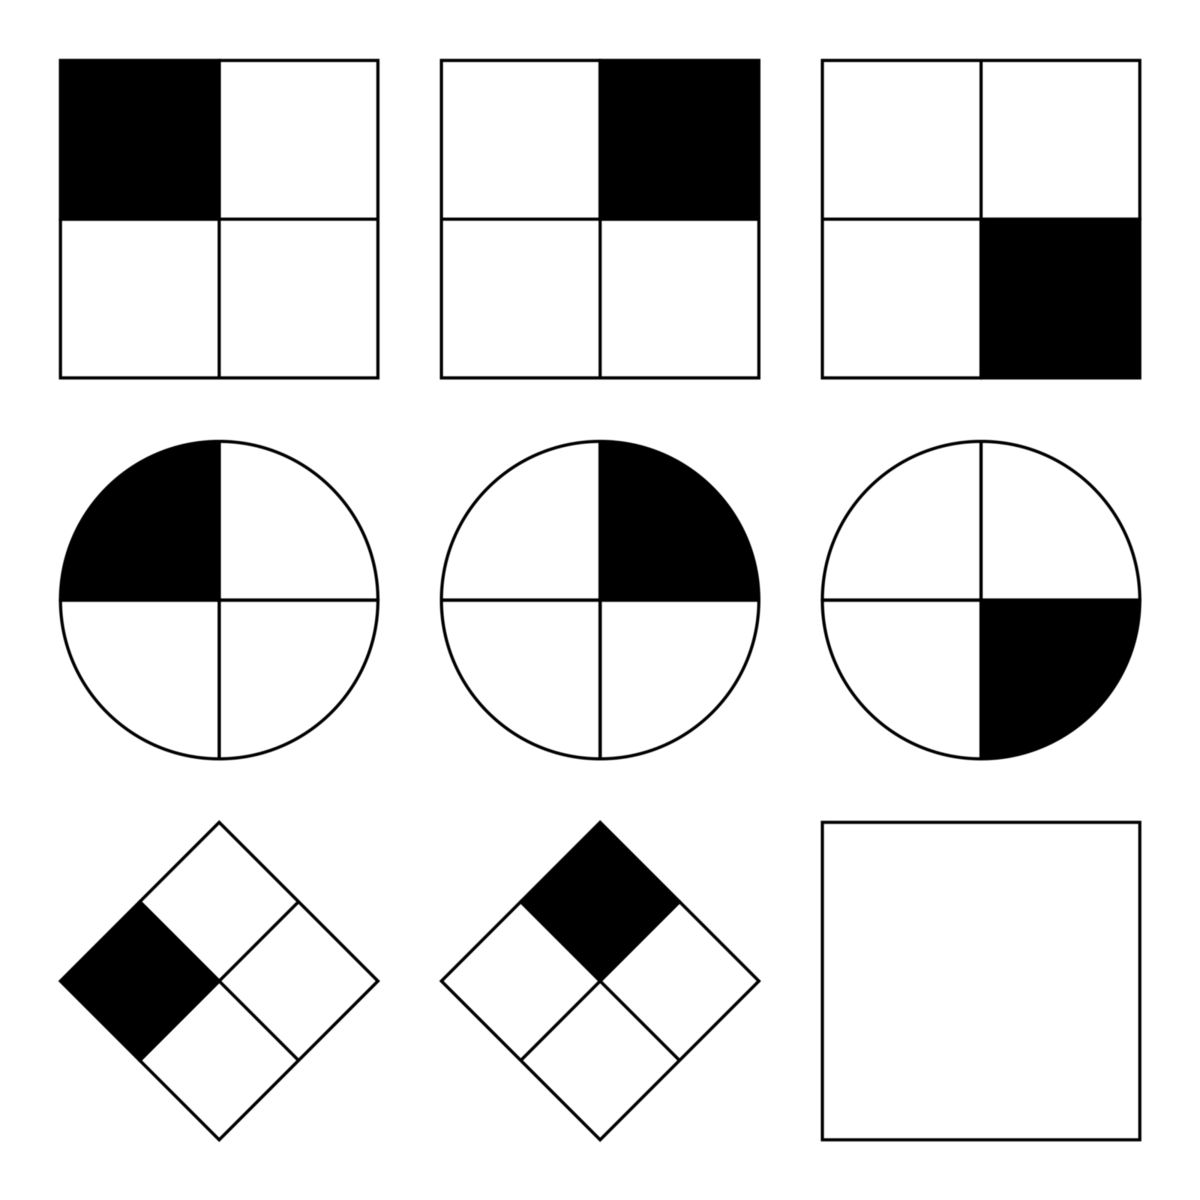 An IQ test item in the style of a Raven's Progressive Matrices test. Given eight patterns, the subject must identify the missing ninth pattern. [source: [Wikipedia](https://en.wikipedia.org/wiki/Raven%27s_Progressive_Matrices)]